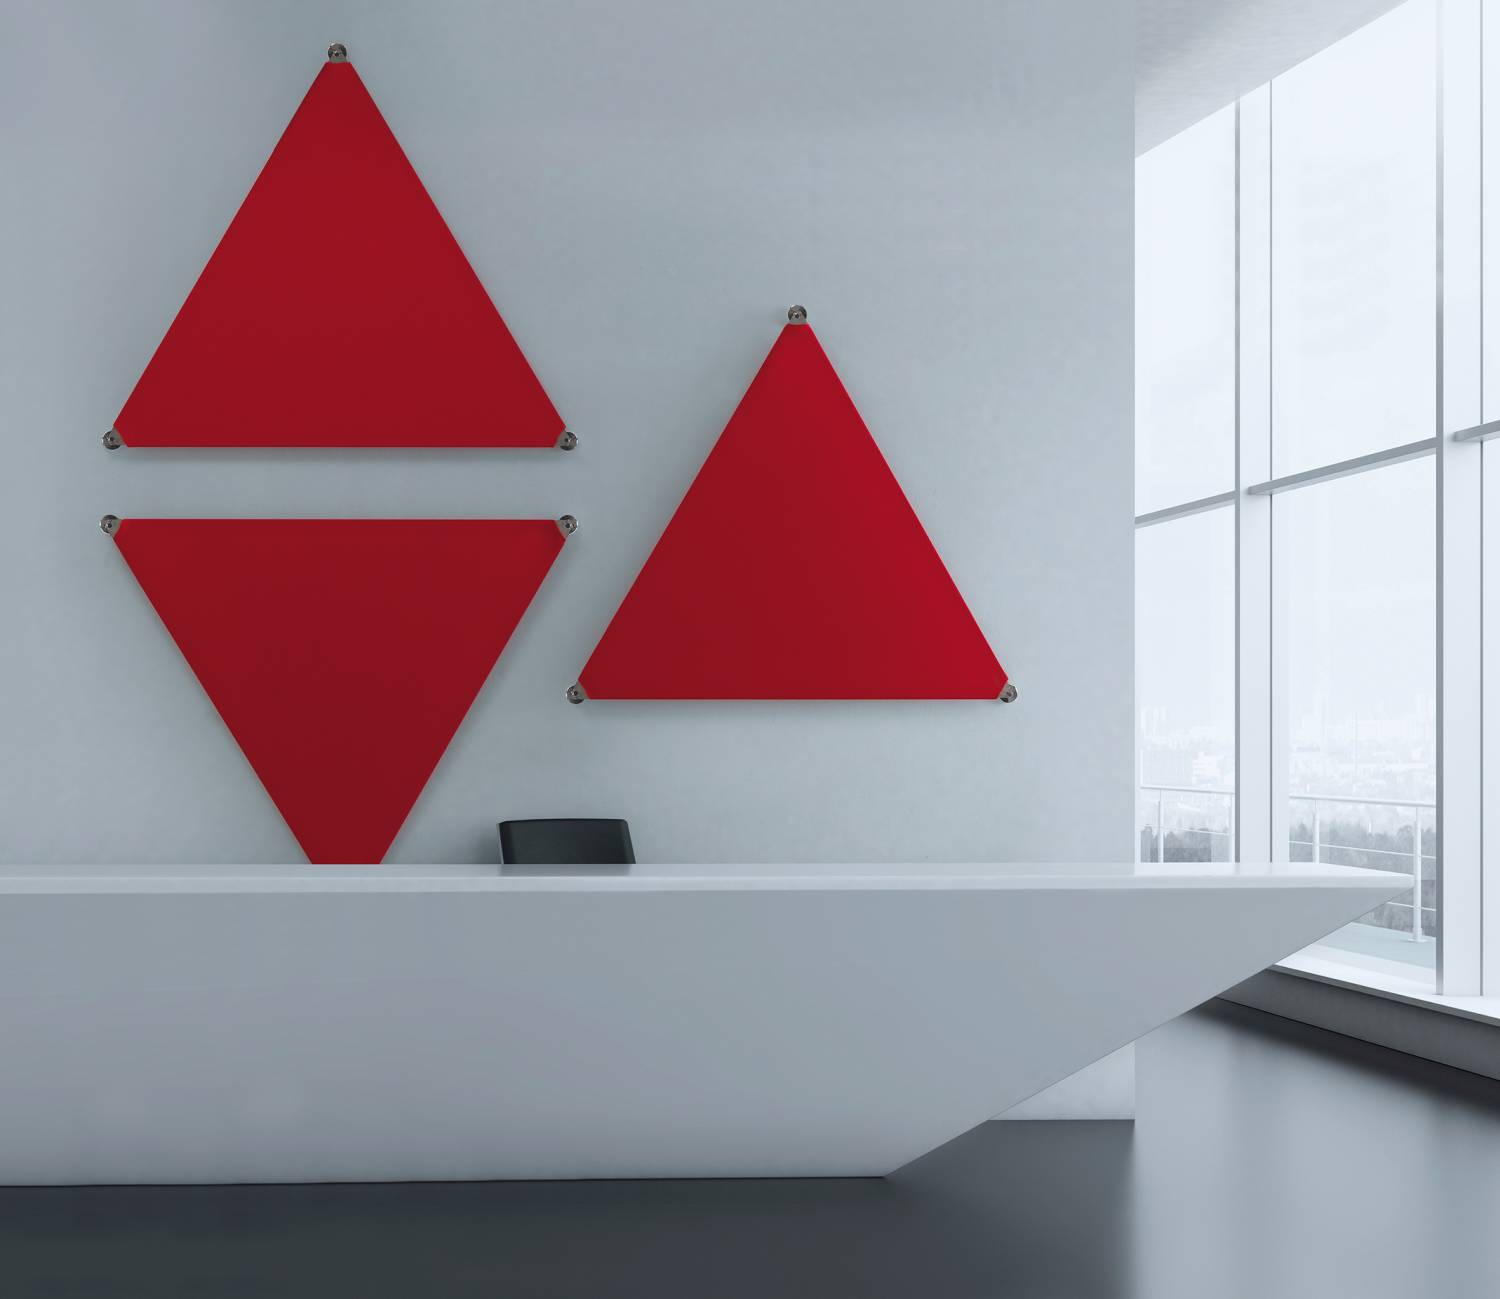 Sipario-Ocee-Triangular-Wall-Mounted-Acoustic-Panels-In-Reception-Area